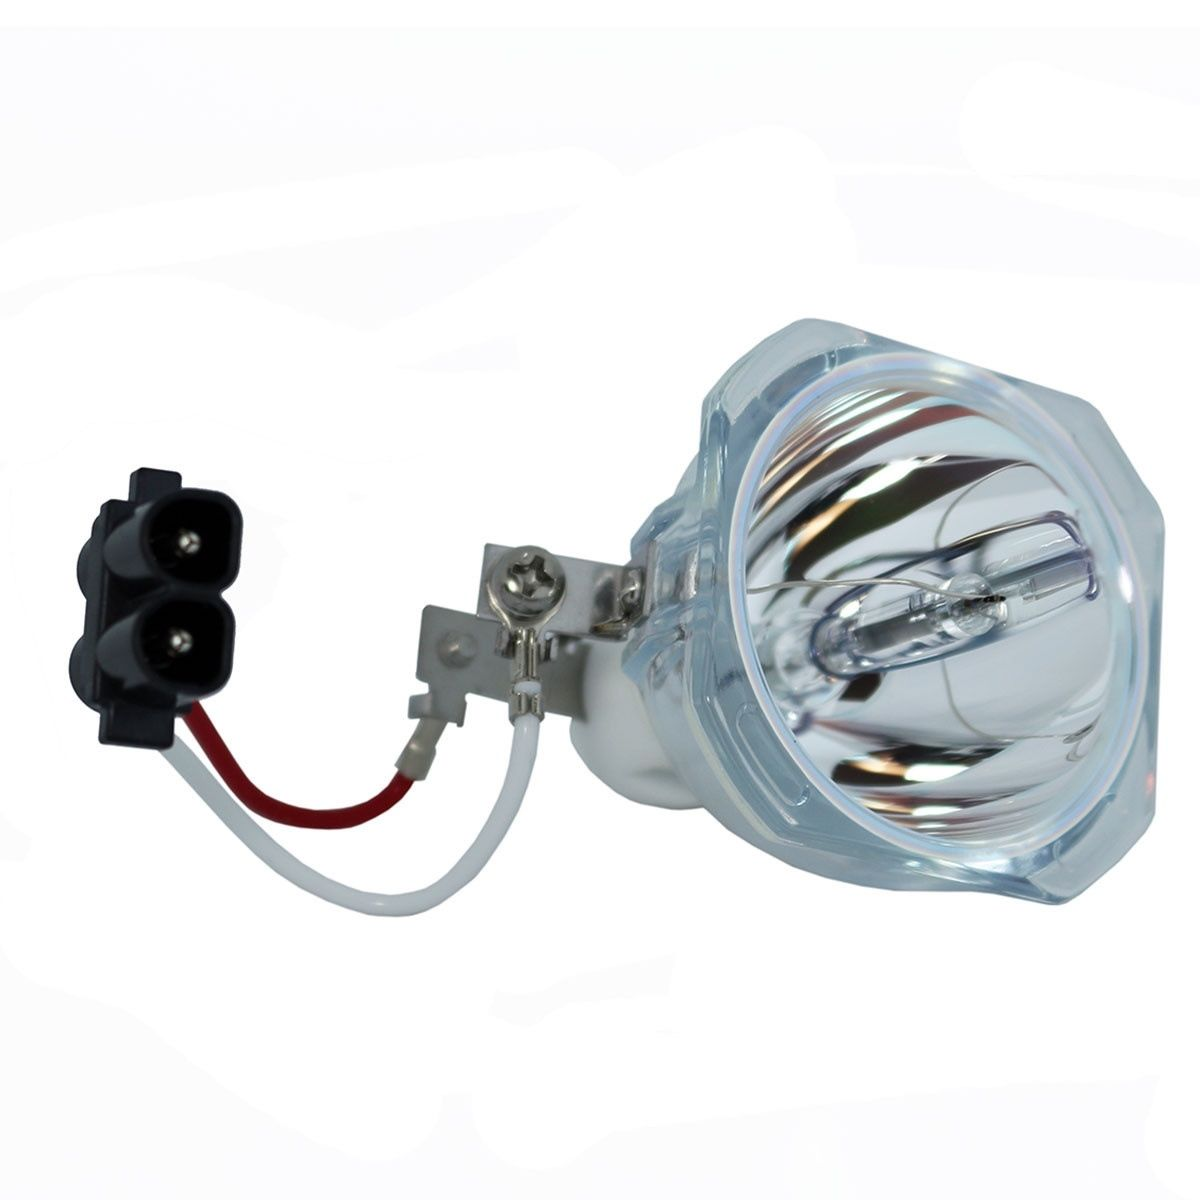 Compatible Bare bulb SP-LAMP-026 for Infocus IN35 IN35W IN35WEP IN36 IN37 LPX8 X30 IN35EP C250 C250W C310 C315 Projector Lamp sp lamp 078 replacement projector lamp for infocus in3124 in3126 in3128hd